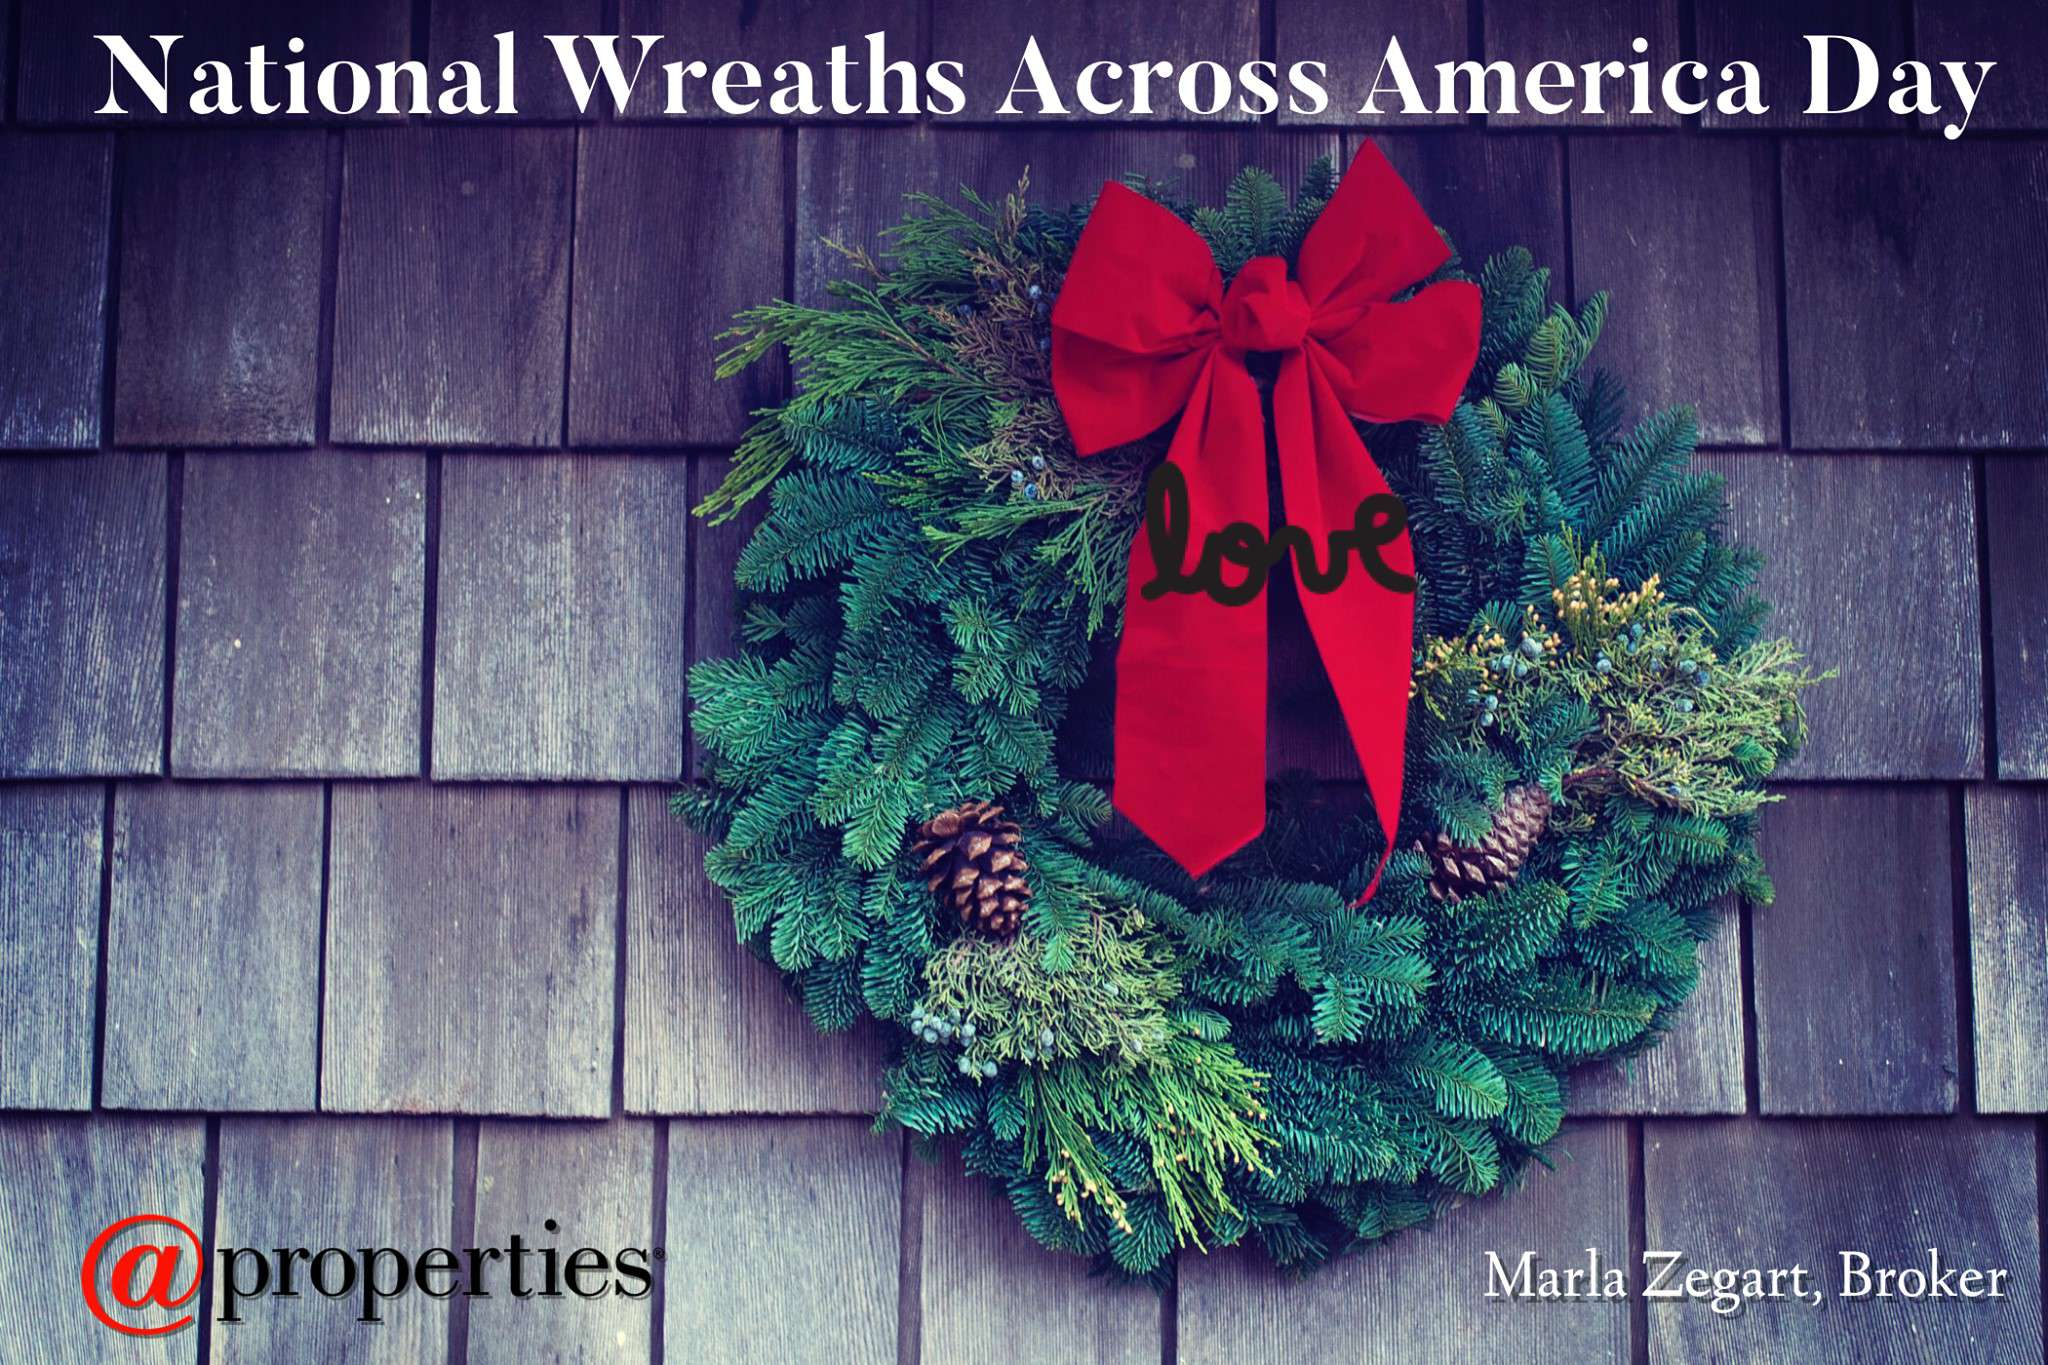 National Wreaths Across America Day Wishes pics free download